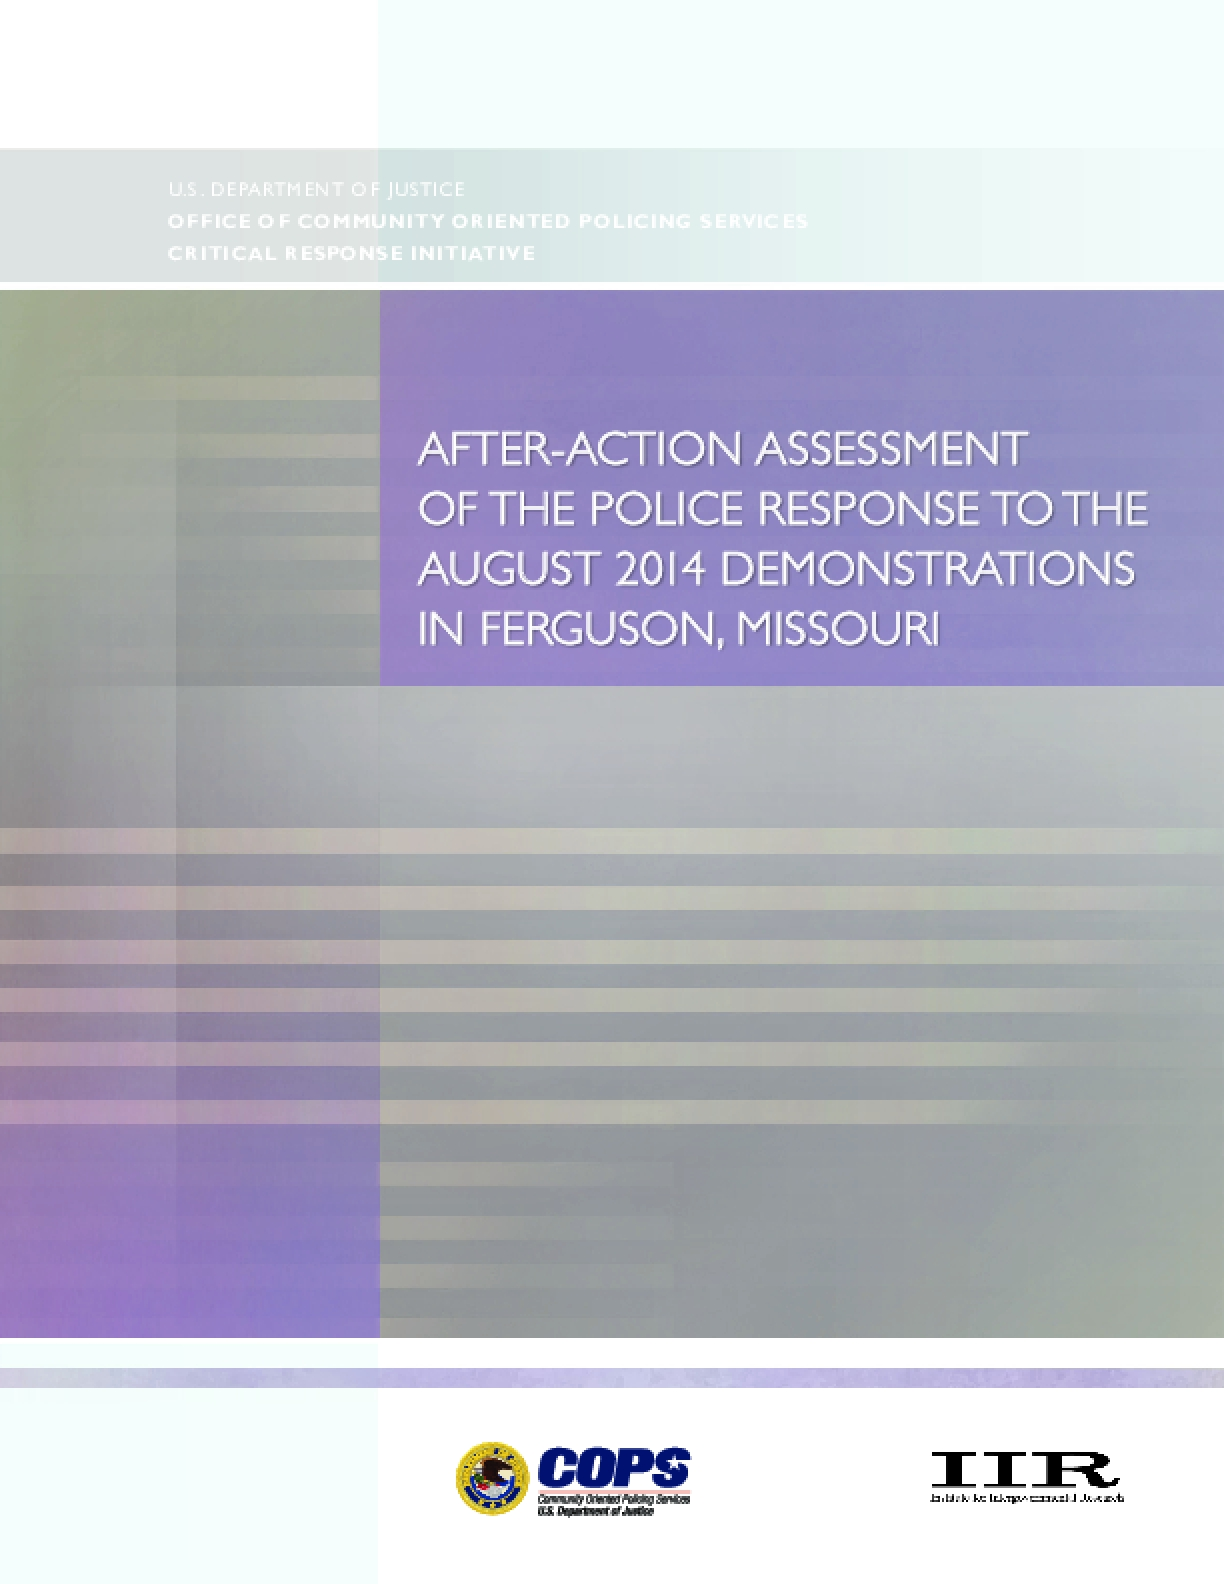 After-Action Assessment of the Police Response to the August 14 Demonstations in Ferguson, Missouri